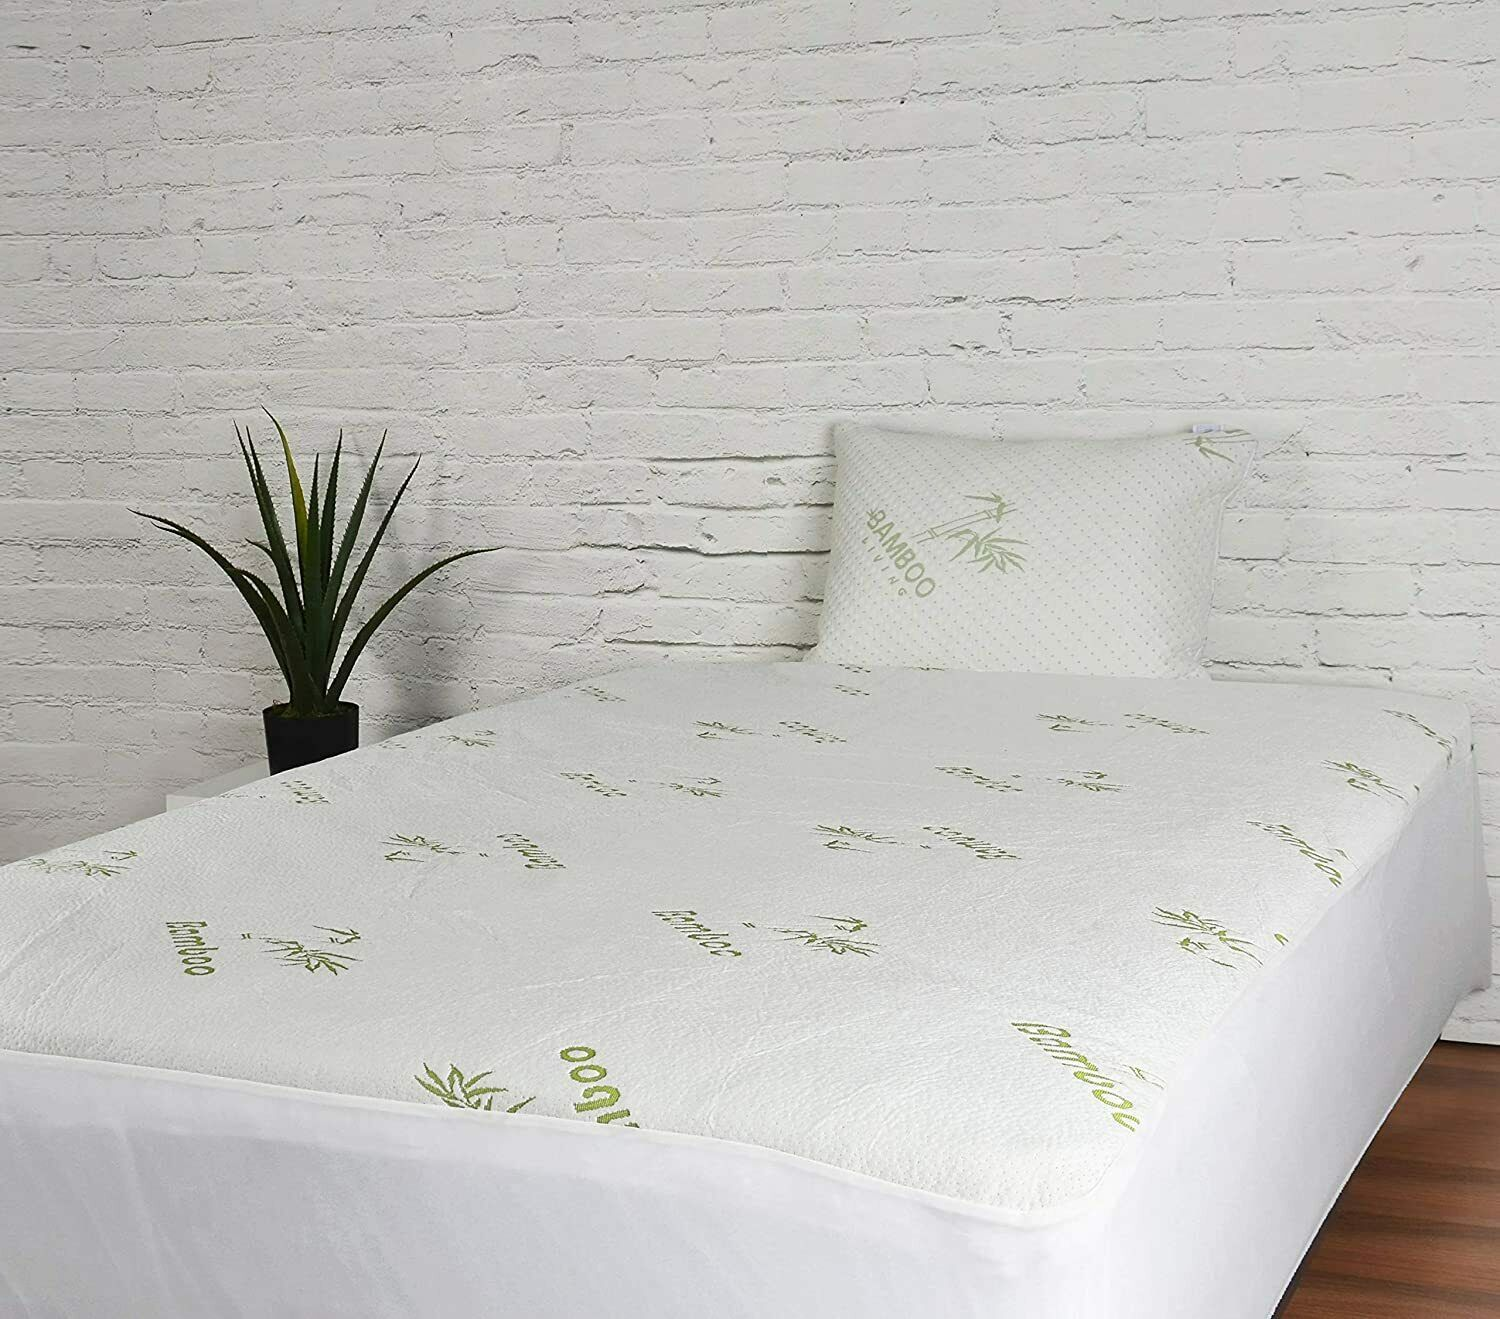 Bamboo Mattress Protector Water Resistant Hypoallergenic Ultra Soft Breathable Ebay